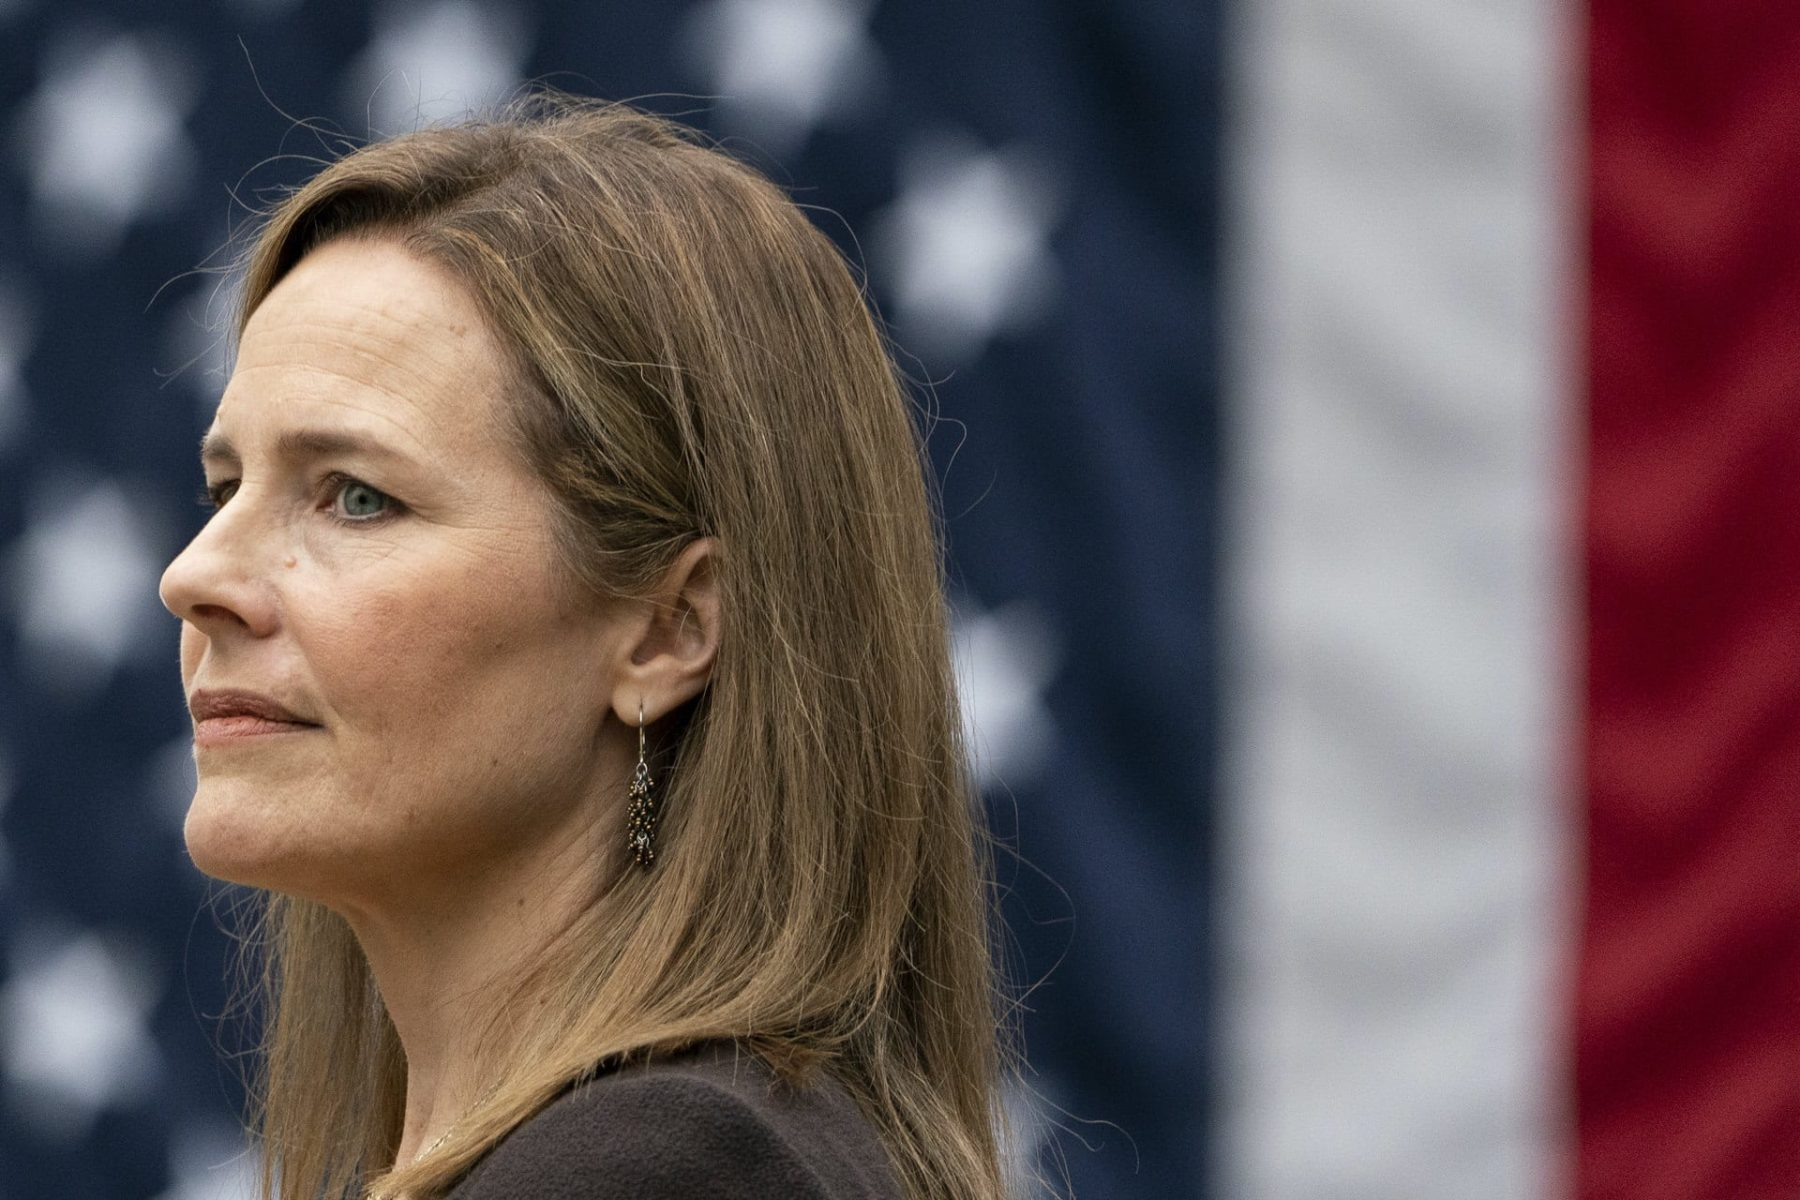 Amy Coney Barrett stands in front of the American flag.